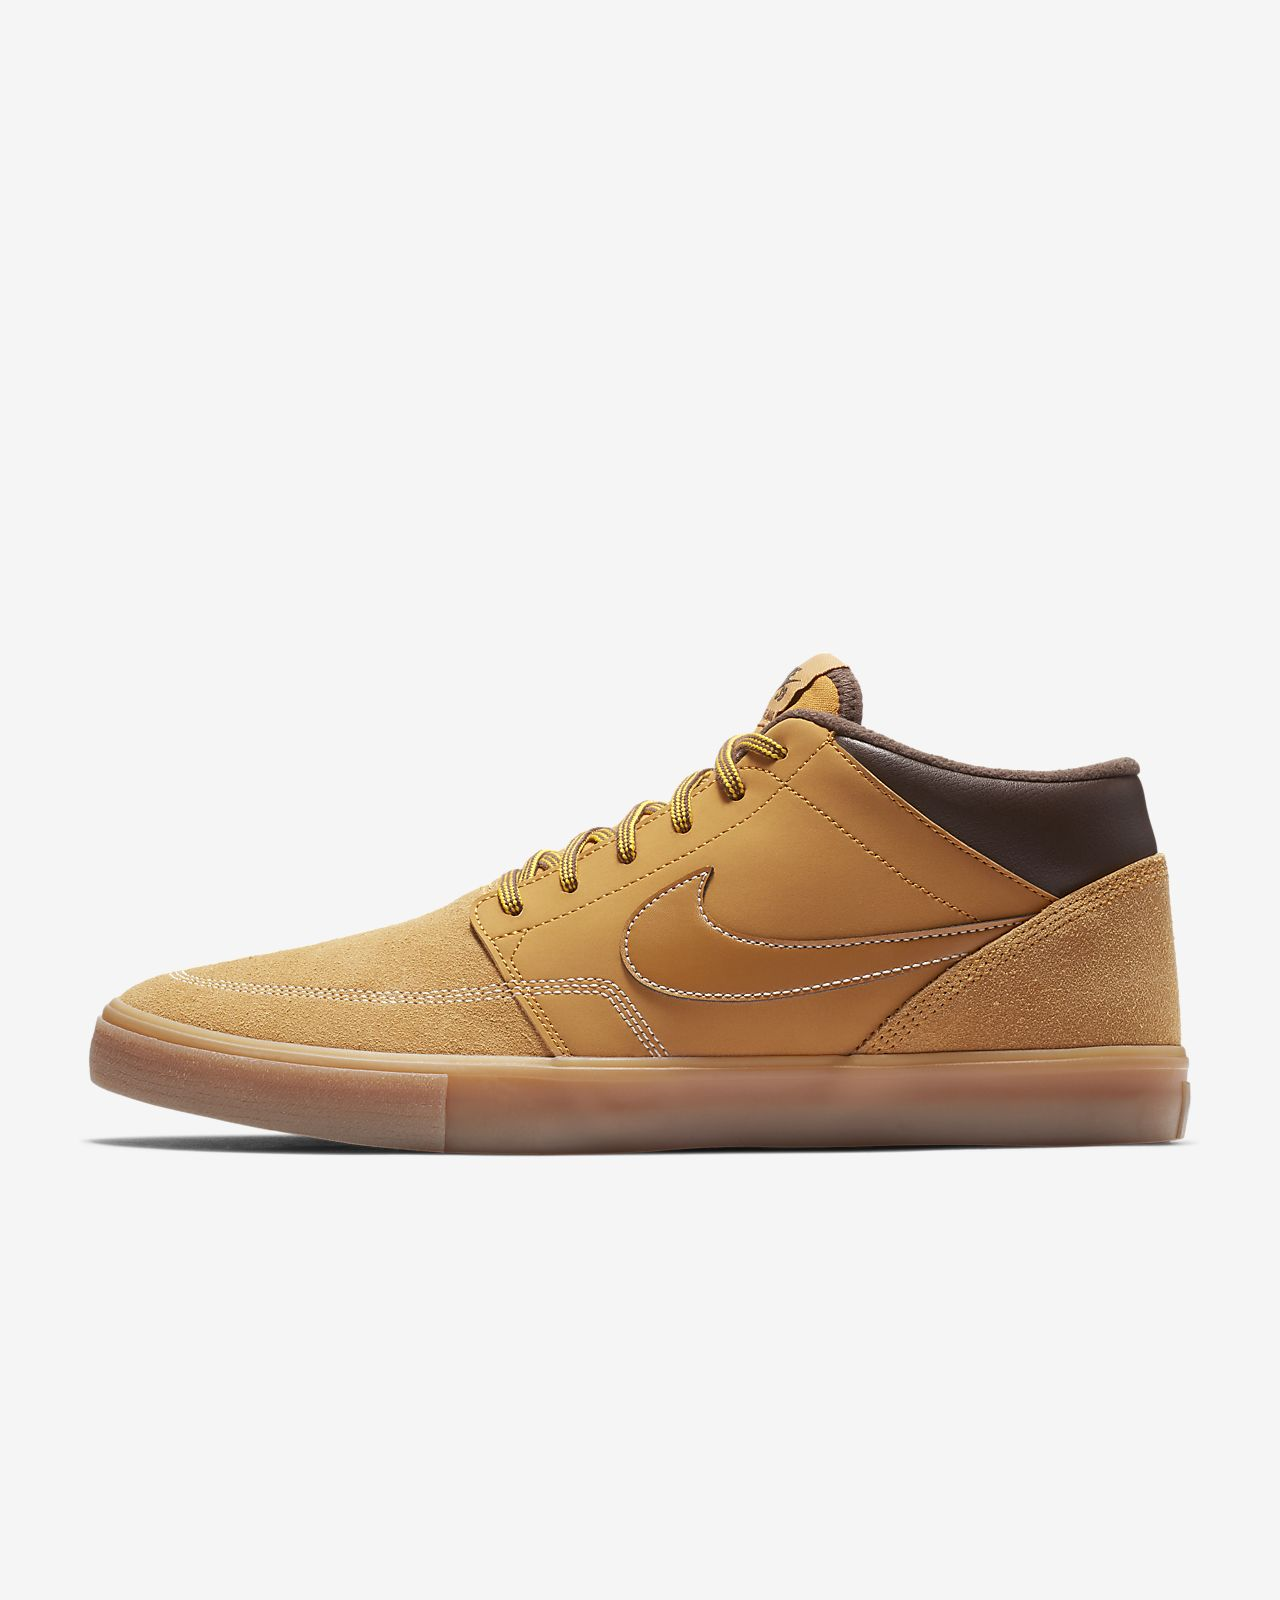 Sb Skateboard Portmore Bota Pour Homme Chaussure Solarsoft Nike Ii De Mid cqjL34A5RS